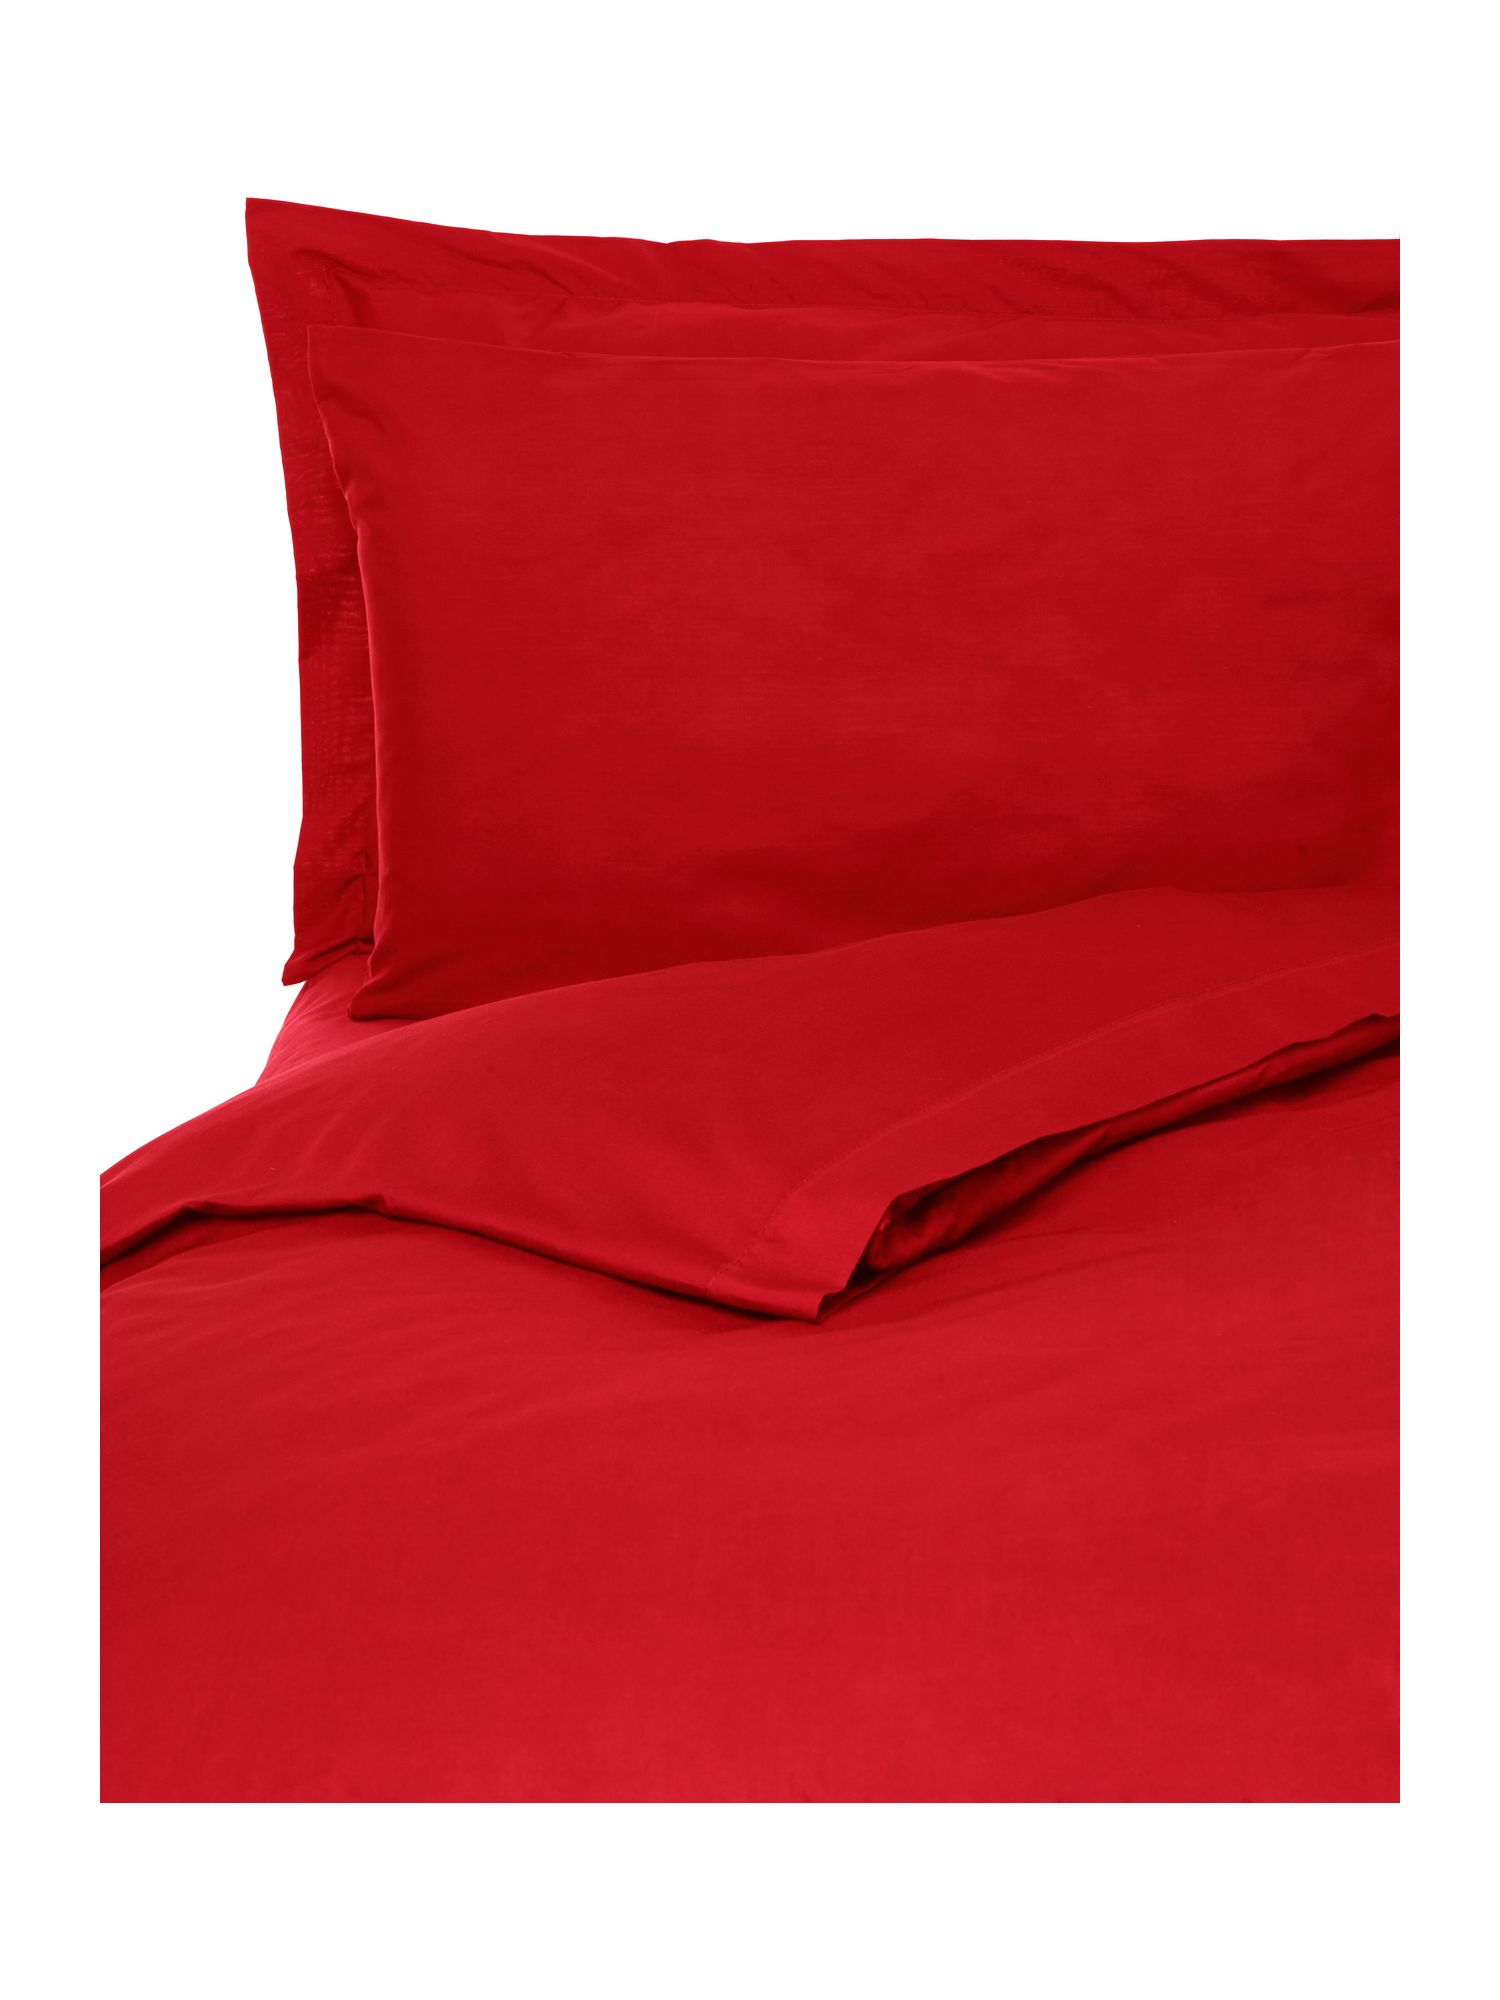 100% cotton plain dye bedlinen in red